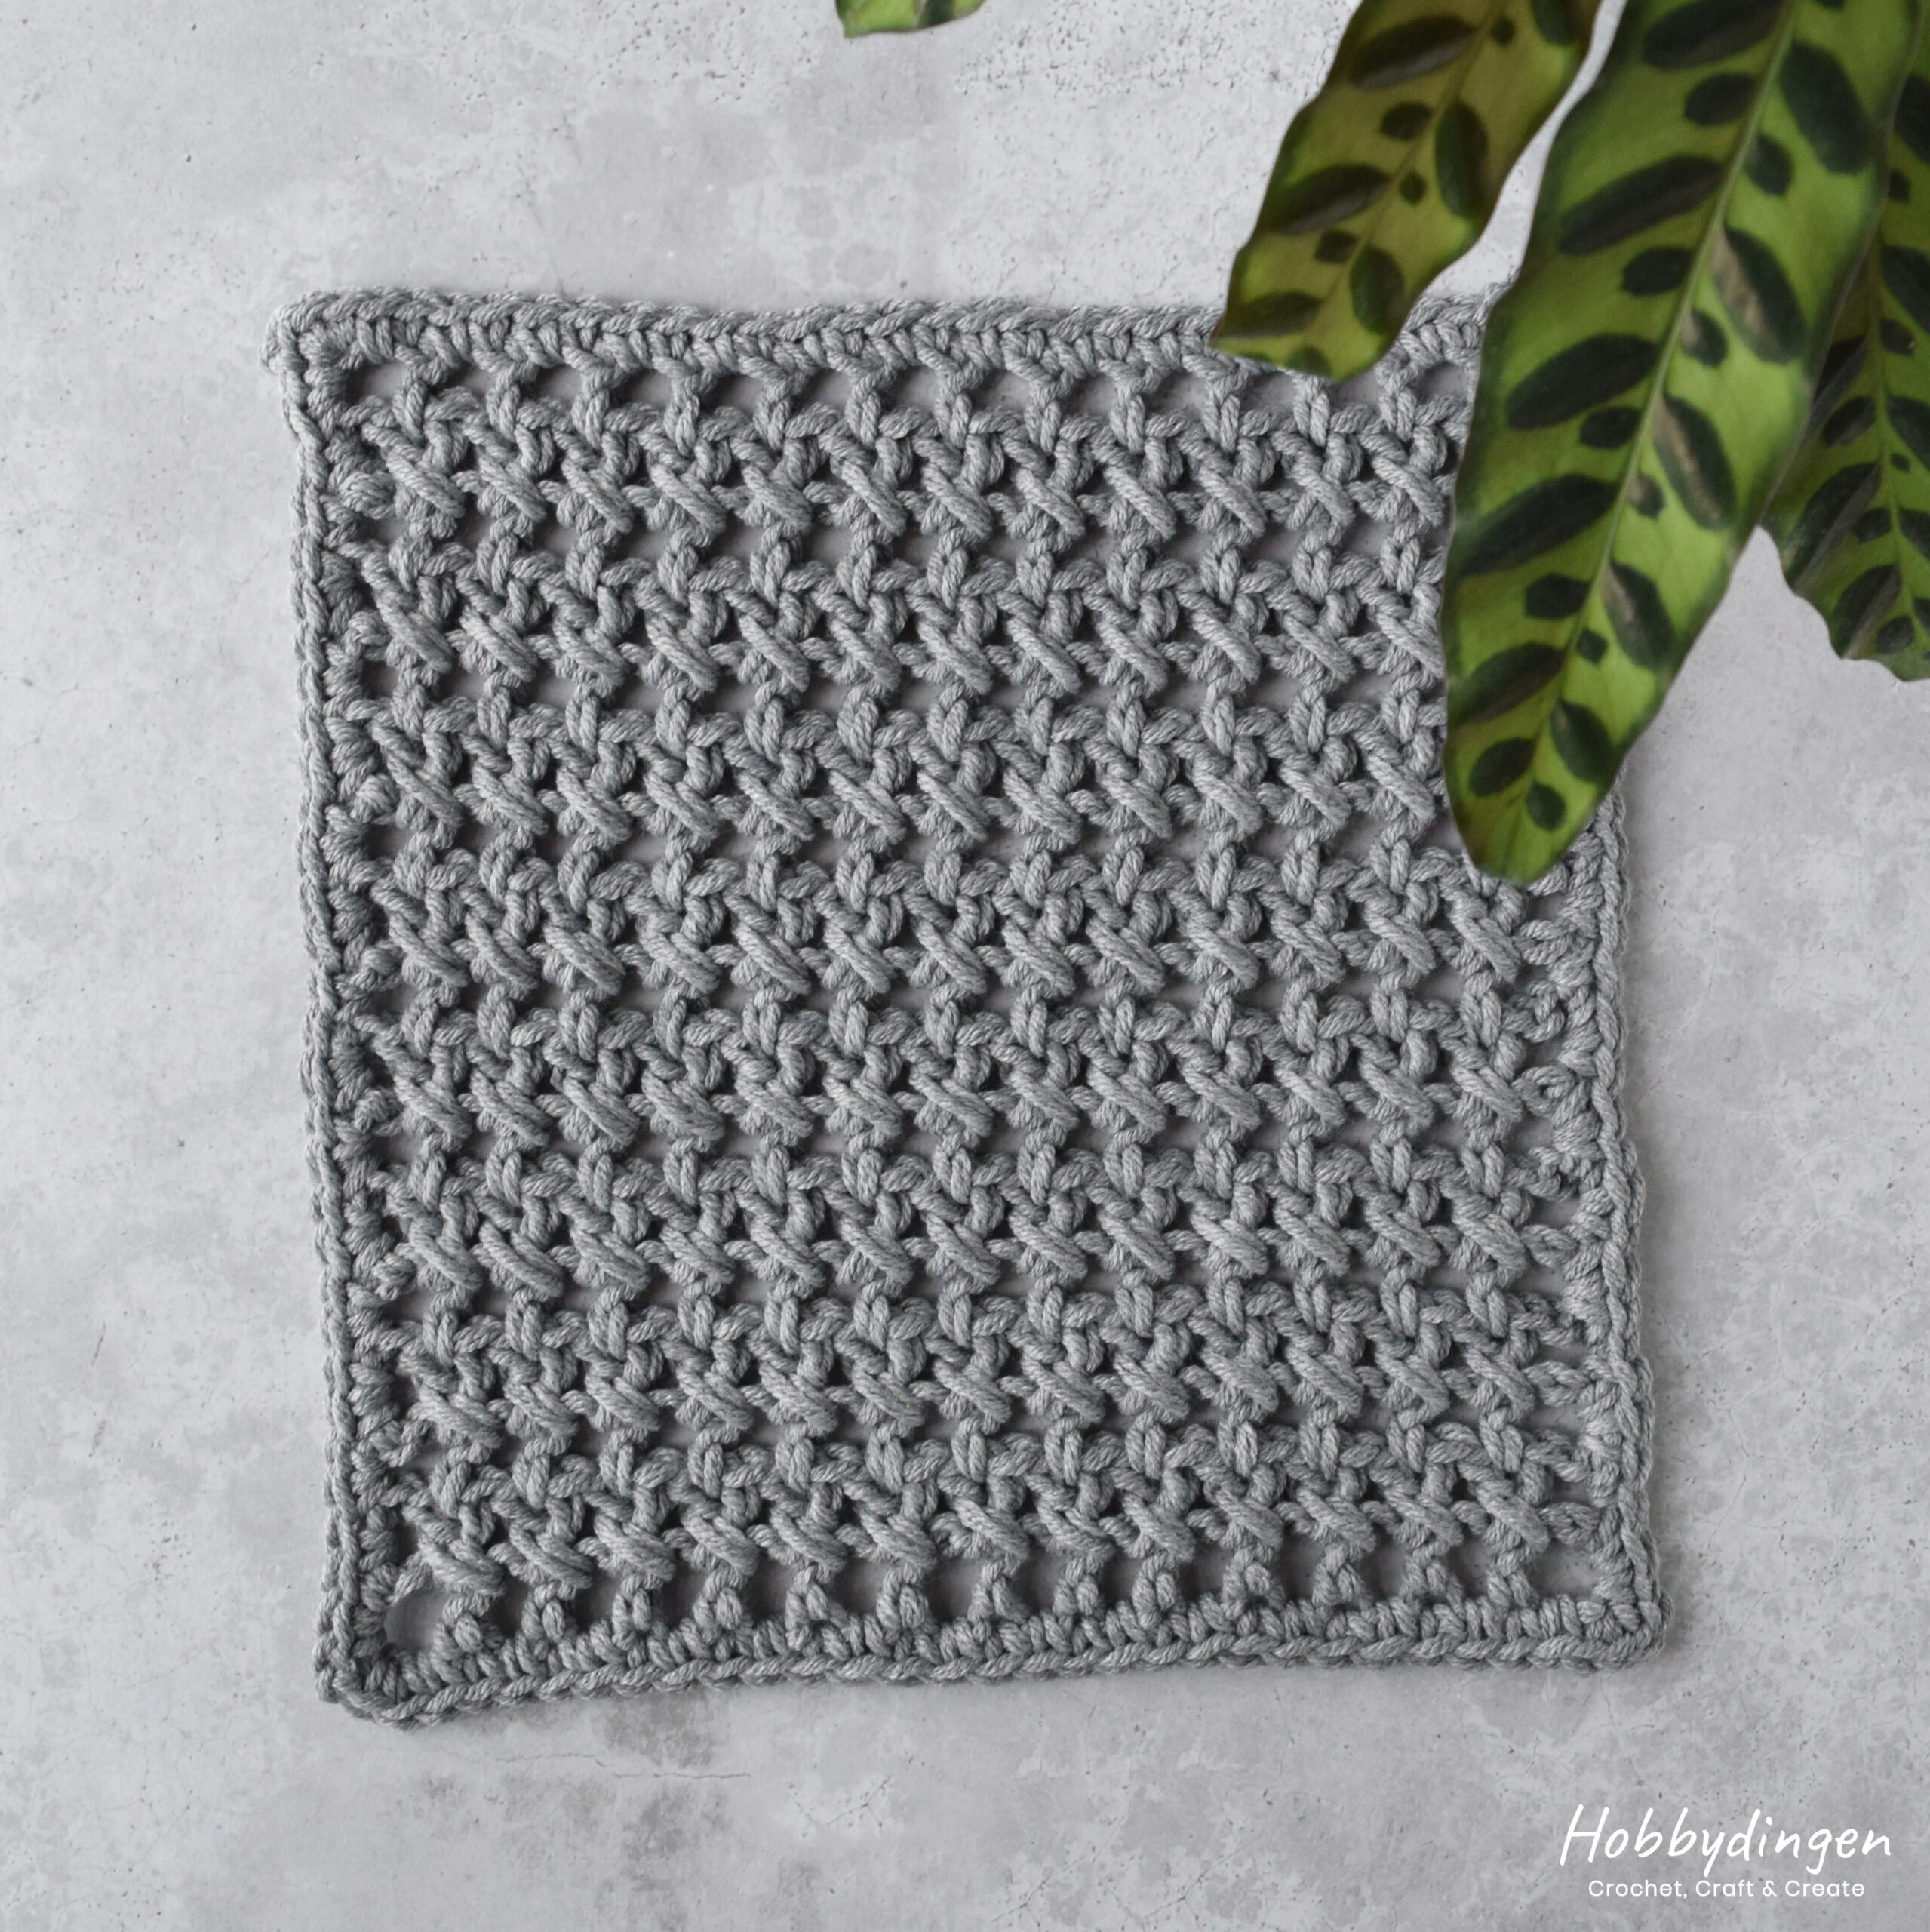 Crochet Pattern December Square Year of Squares Blanket crochet along - Hobbydingen.com